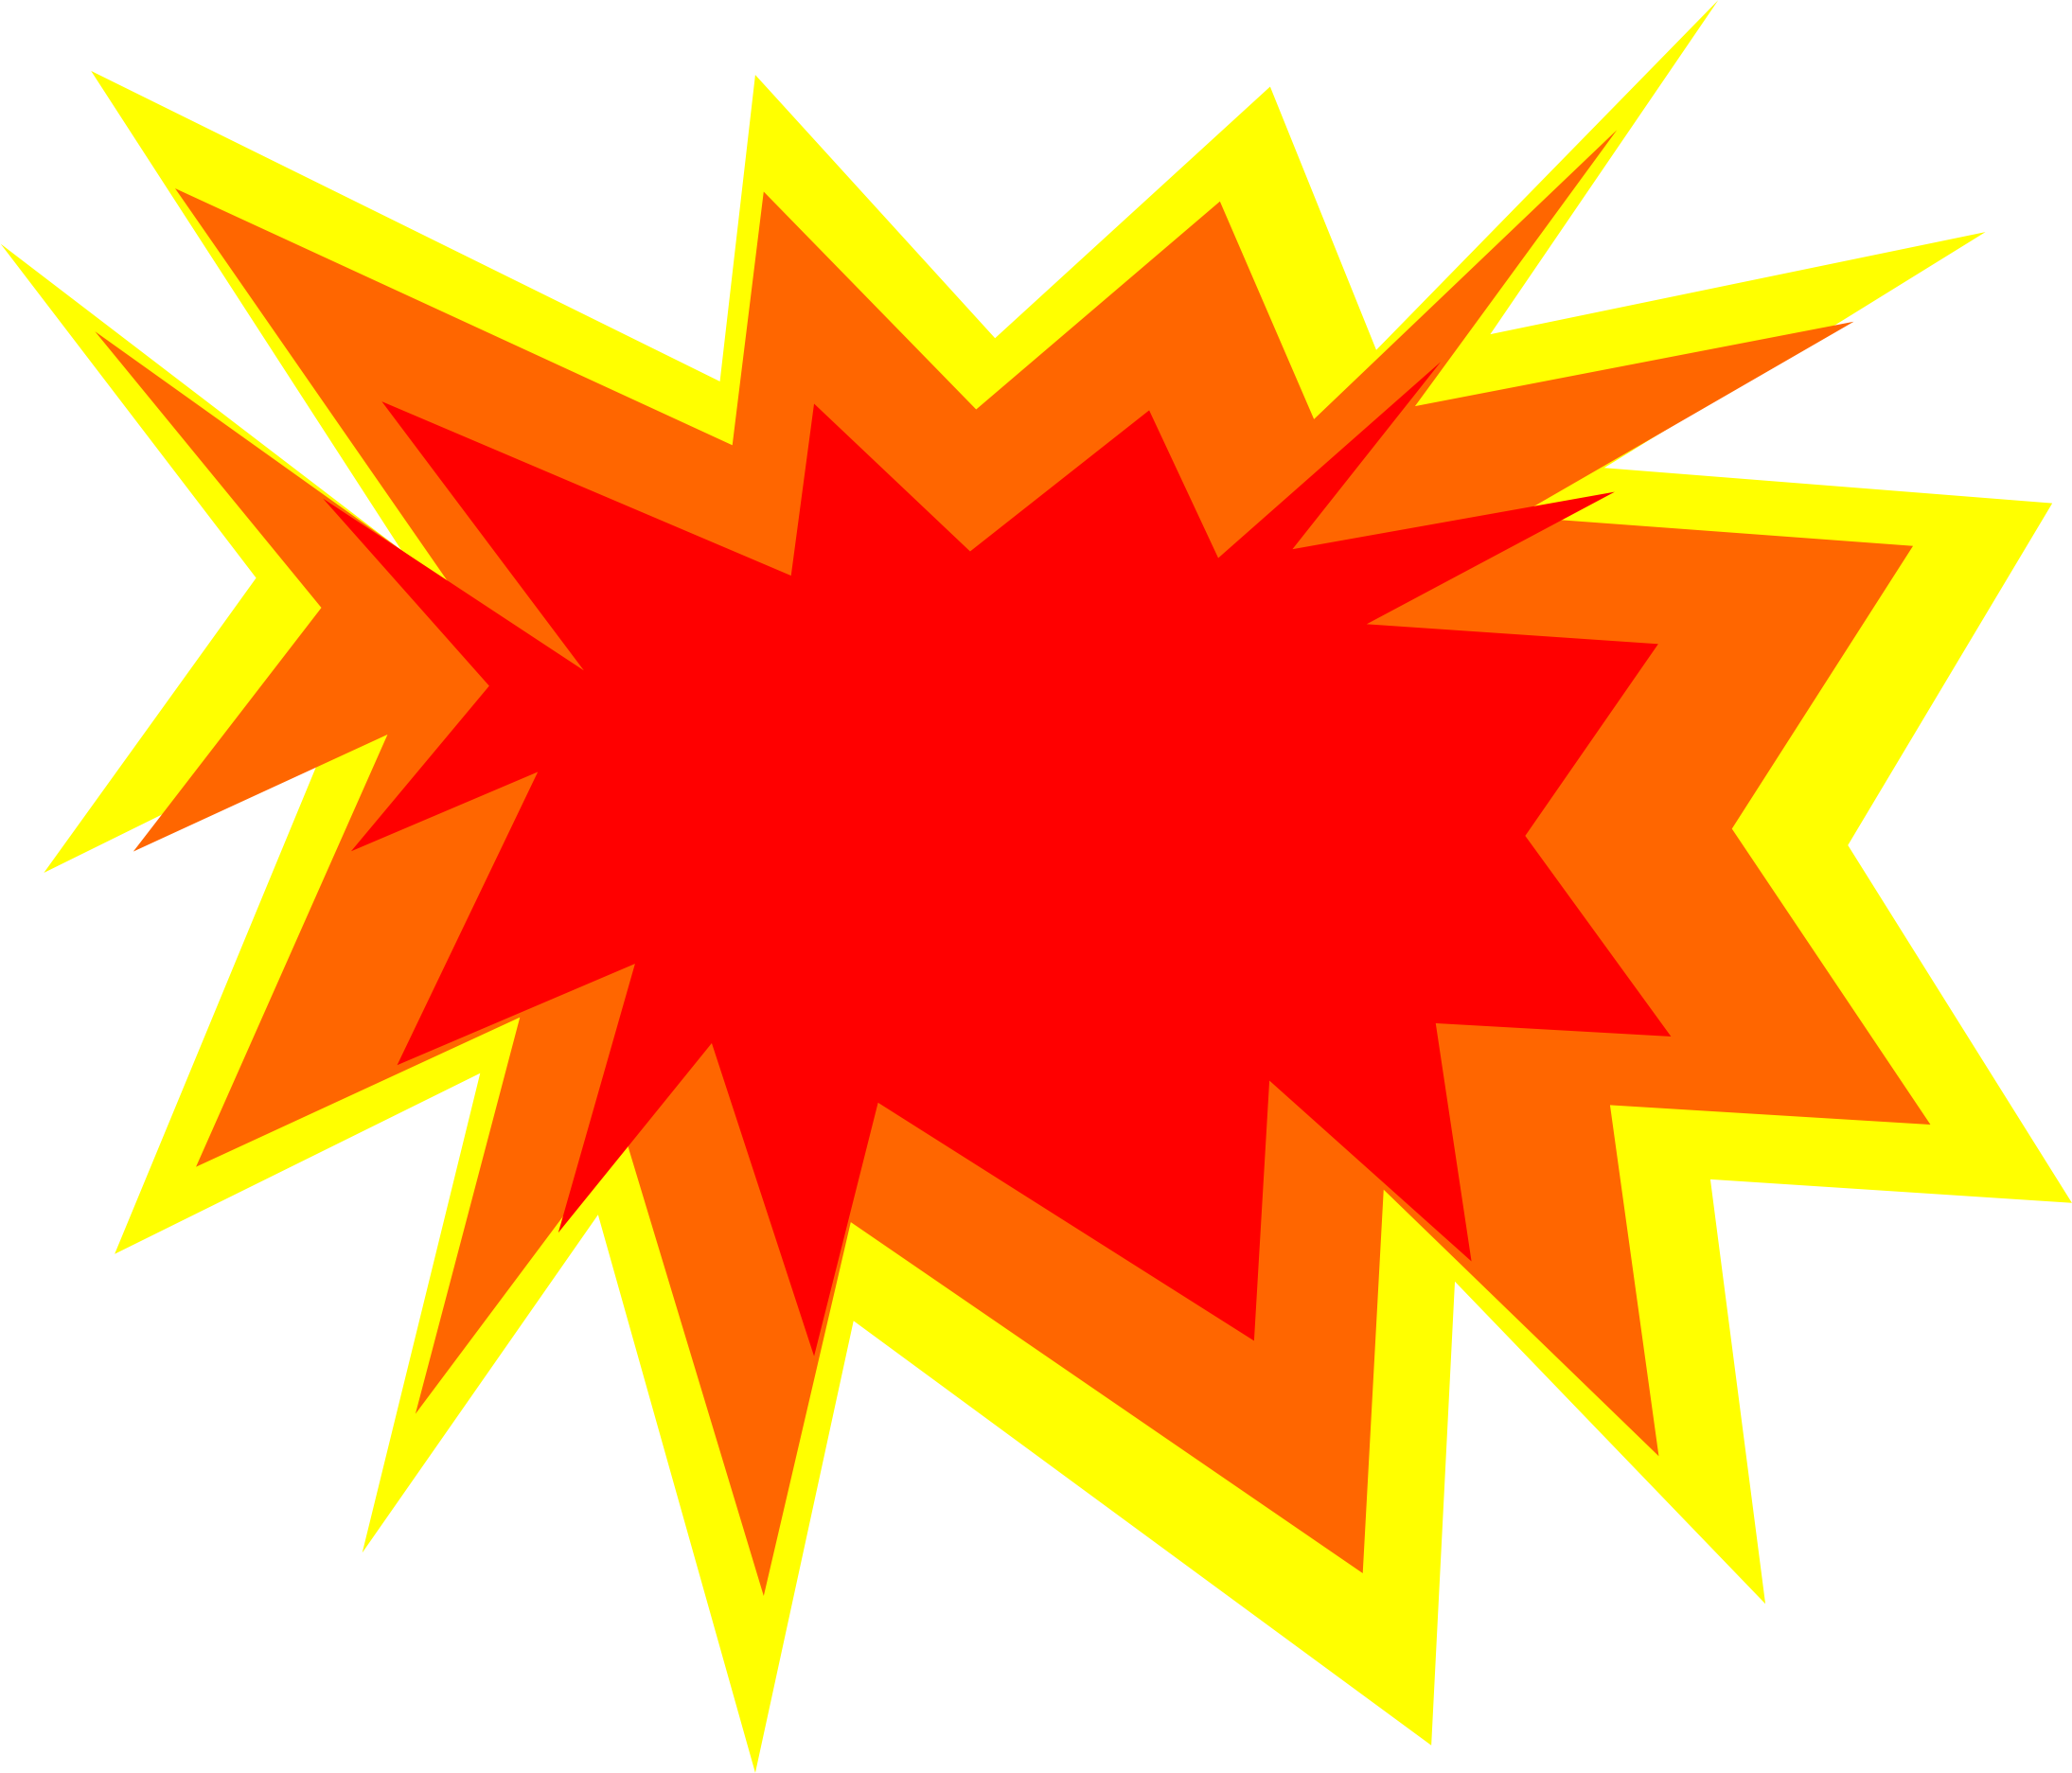 explosion clipart png 5 clipart station rh clipartstation com explosion clip art free explosion clip art free